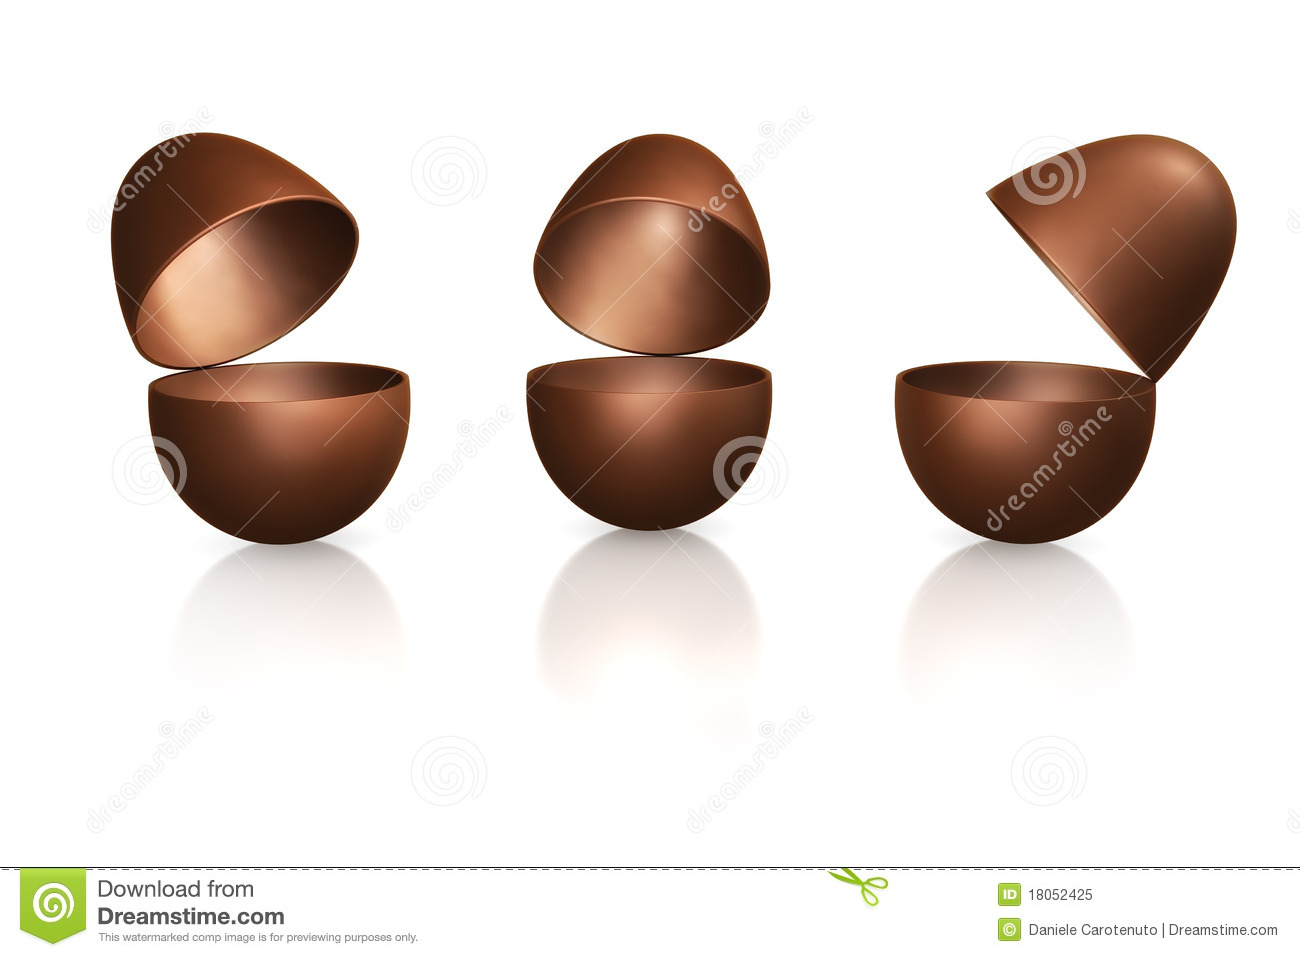 Open Easter Eggs Royalty Free Stock Photo   Image  18052425 iRRyZBgB